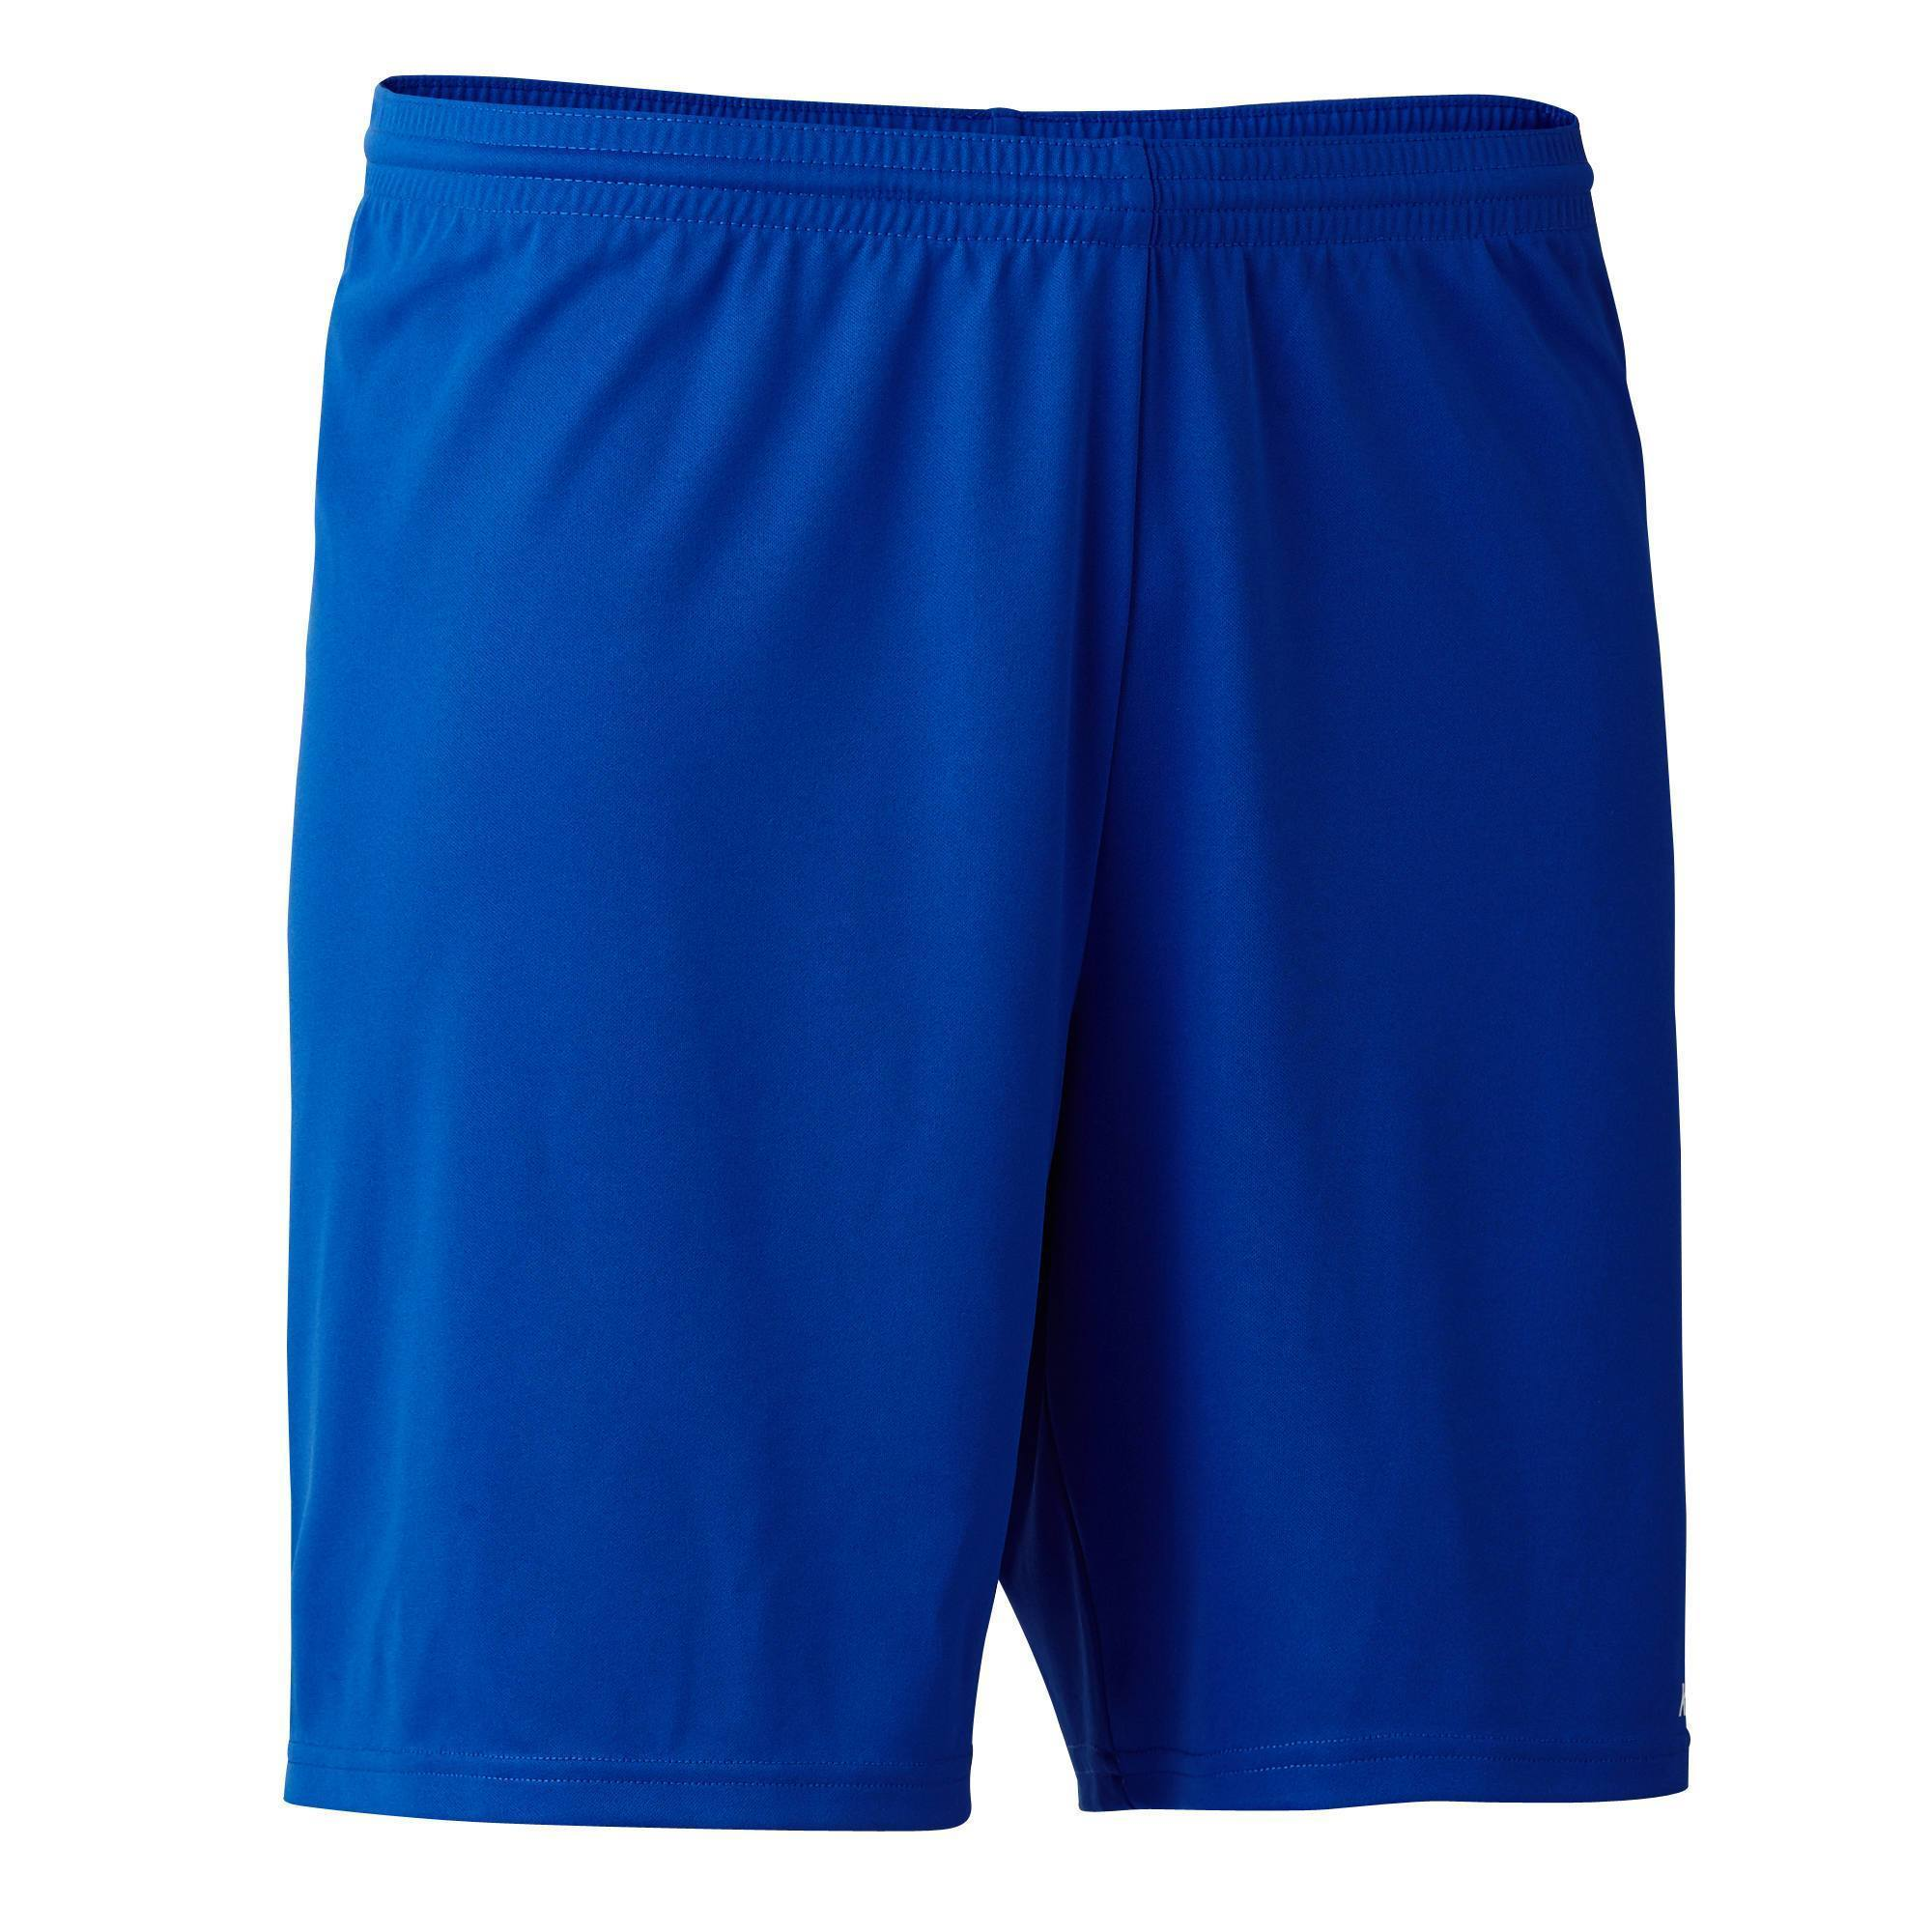 SHORT DE FOOTBALL ADULTE F100 BLEU Clubs   Collectivités  32a566e0278